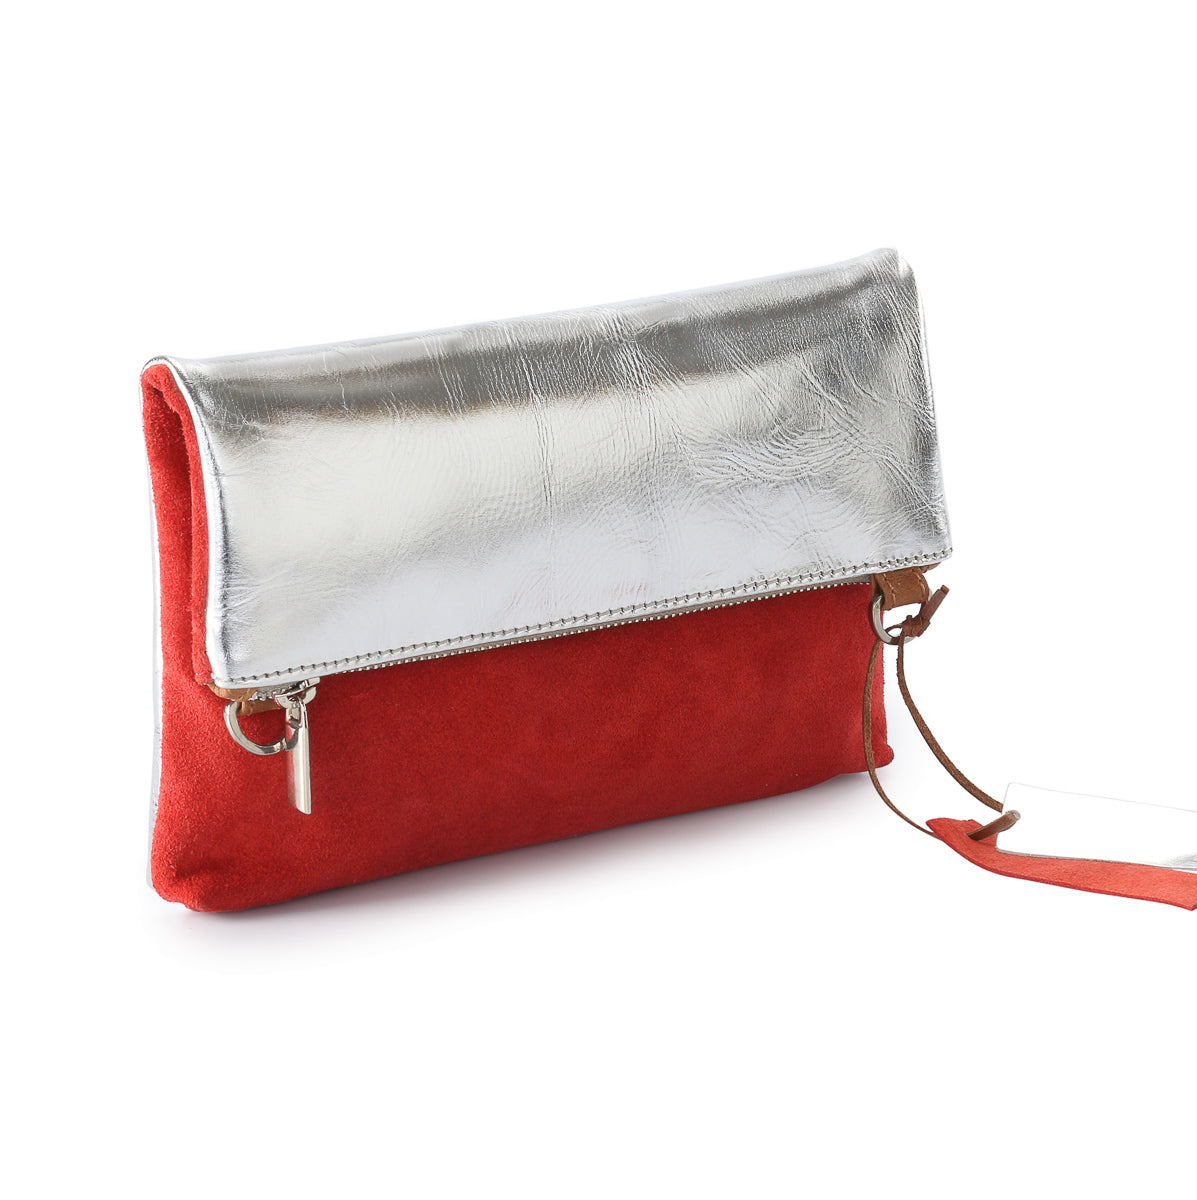 Metallic Rimor Anna 2 way leather messenger clutch bag #LW12 silver